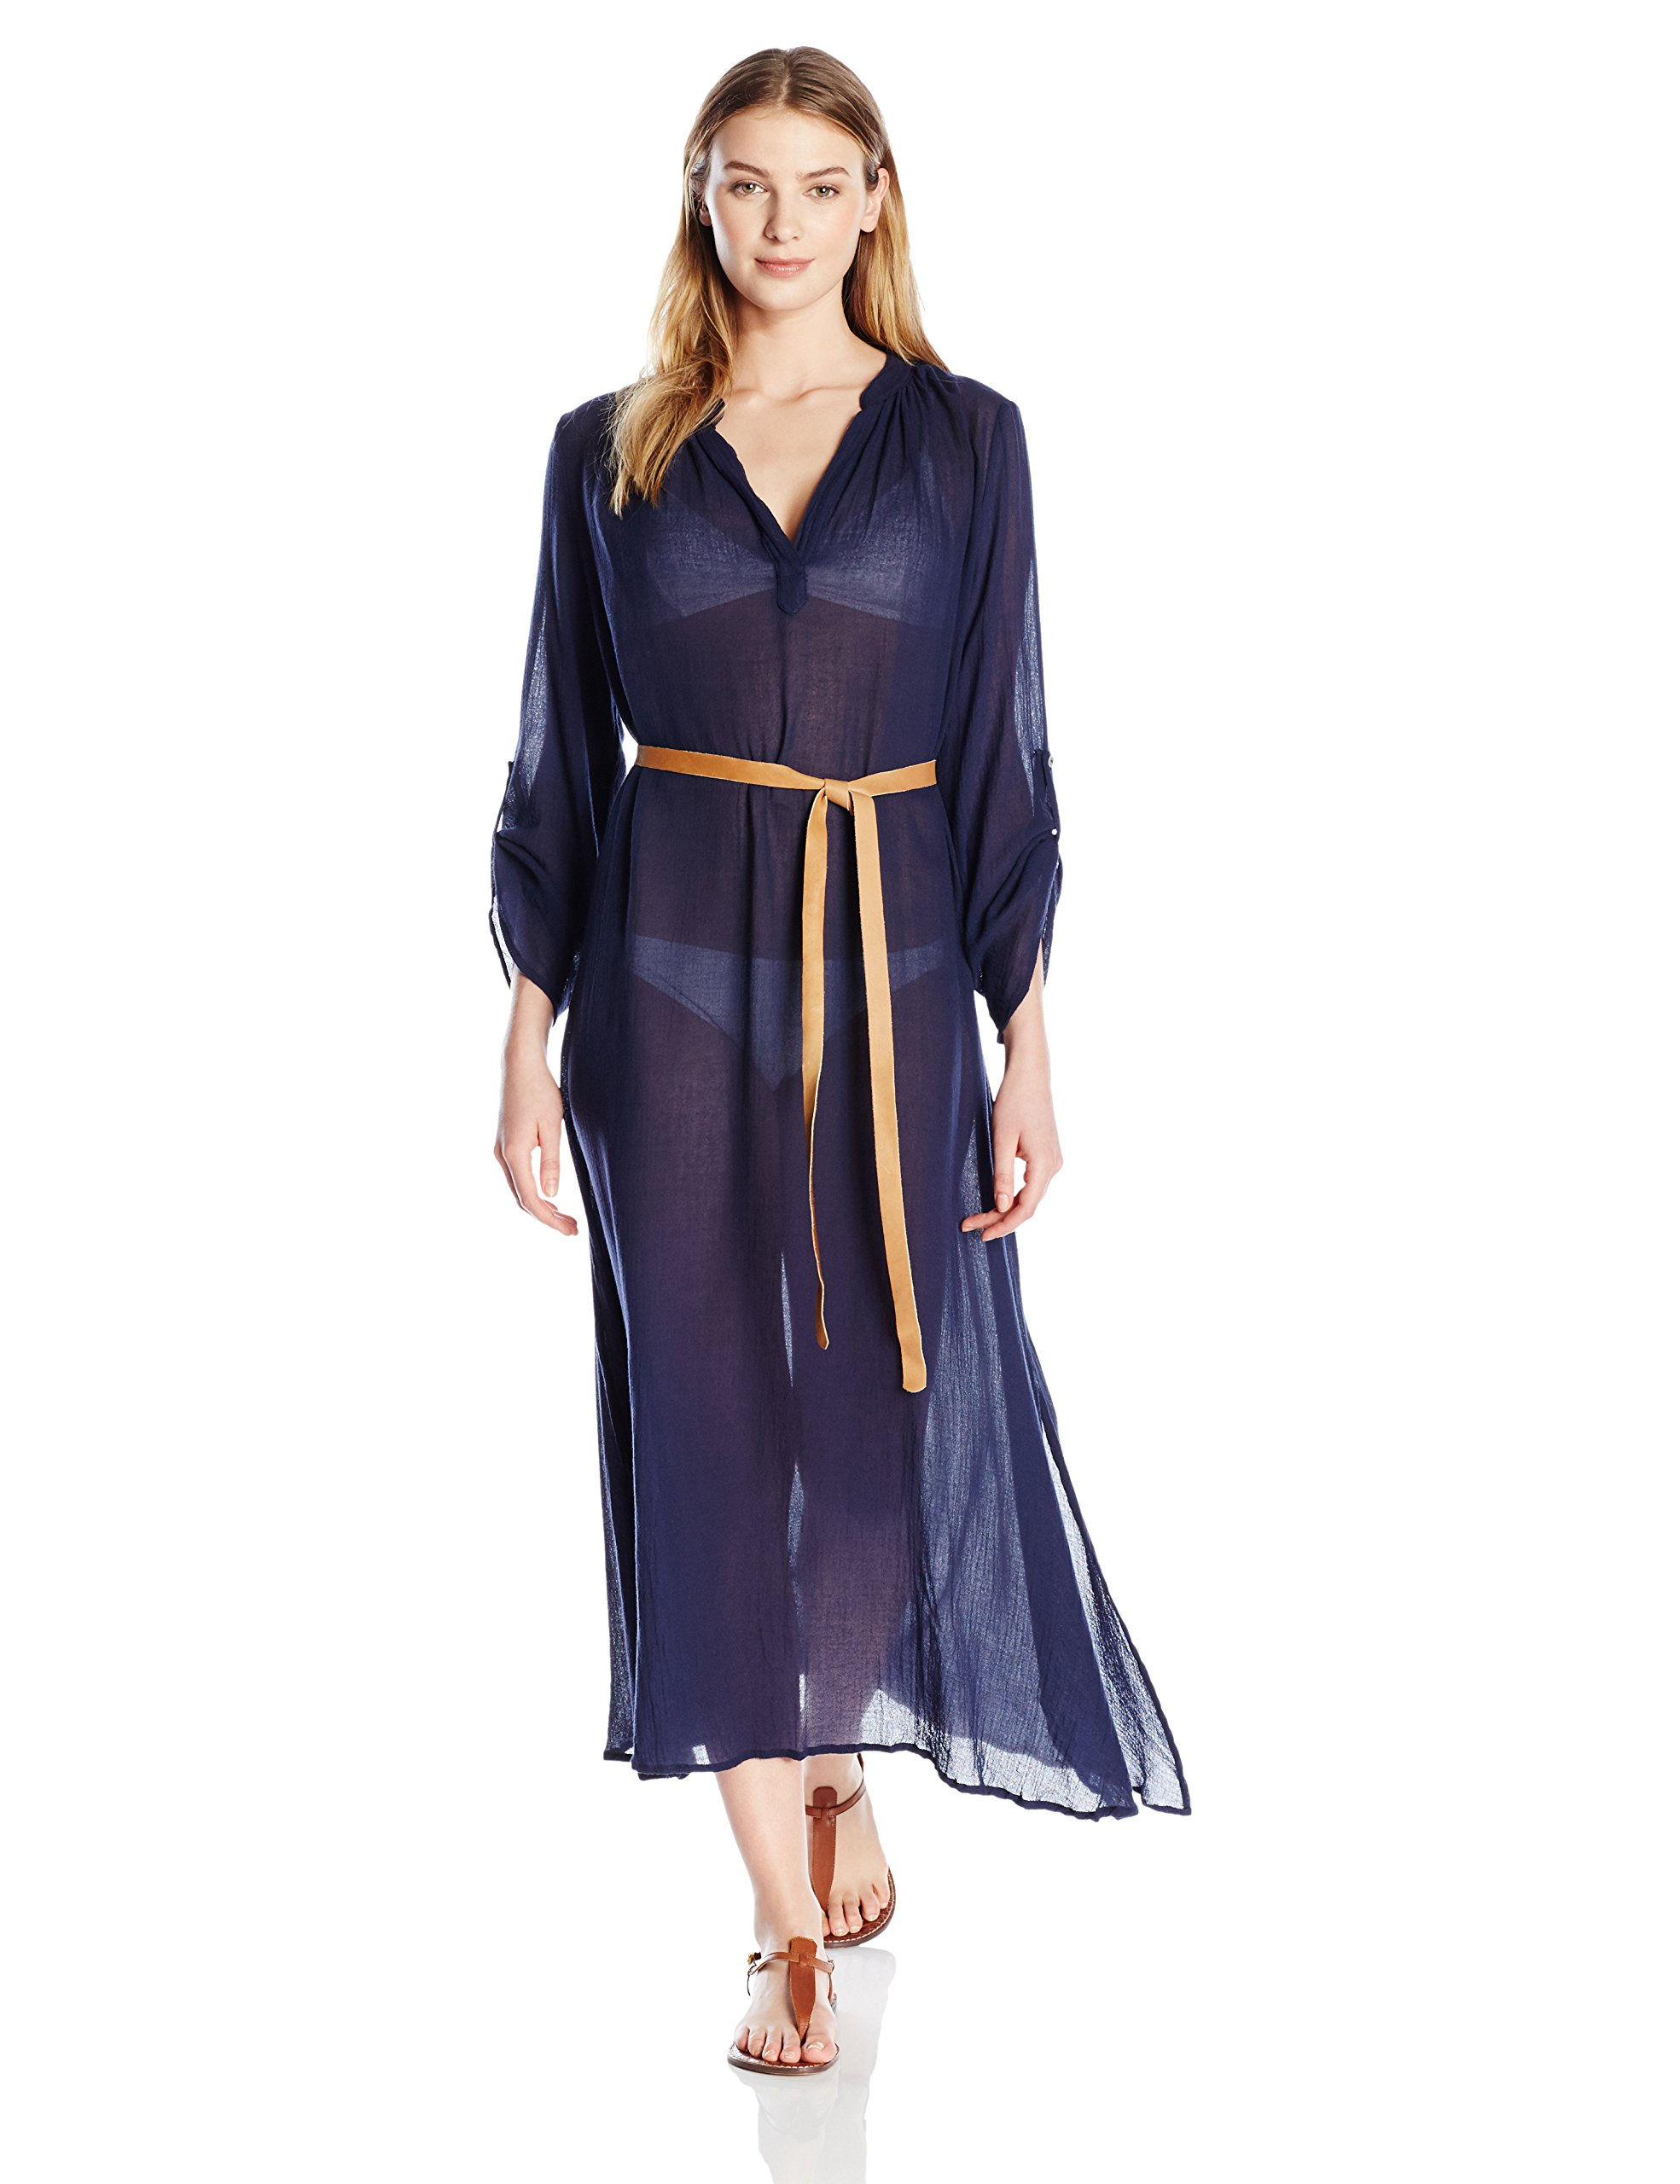 Eberjey Women's Summer of Love Haven Cover up, Deep Blue, S/M